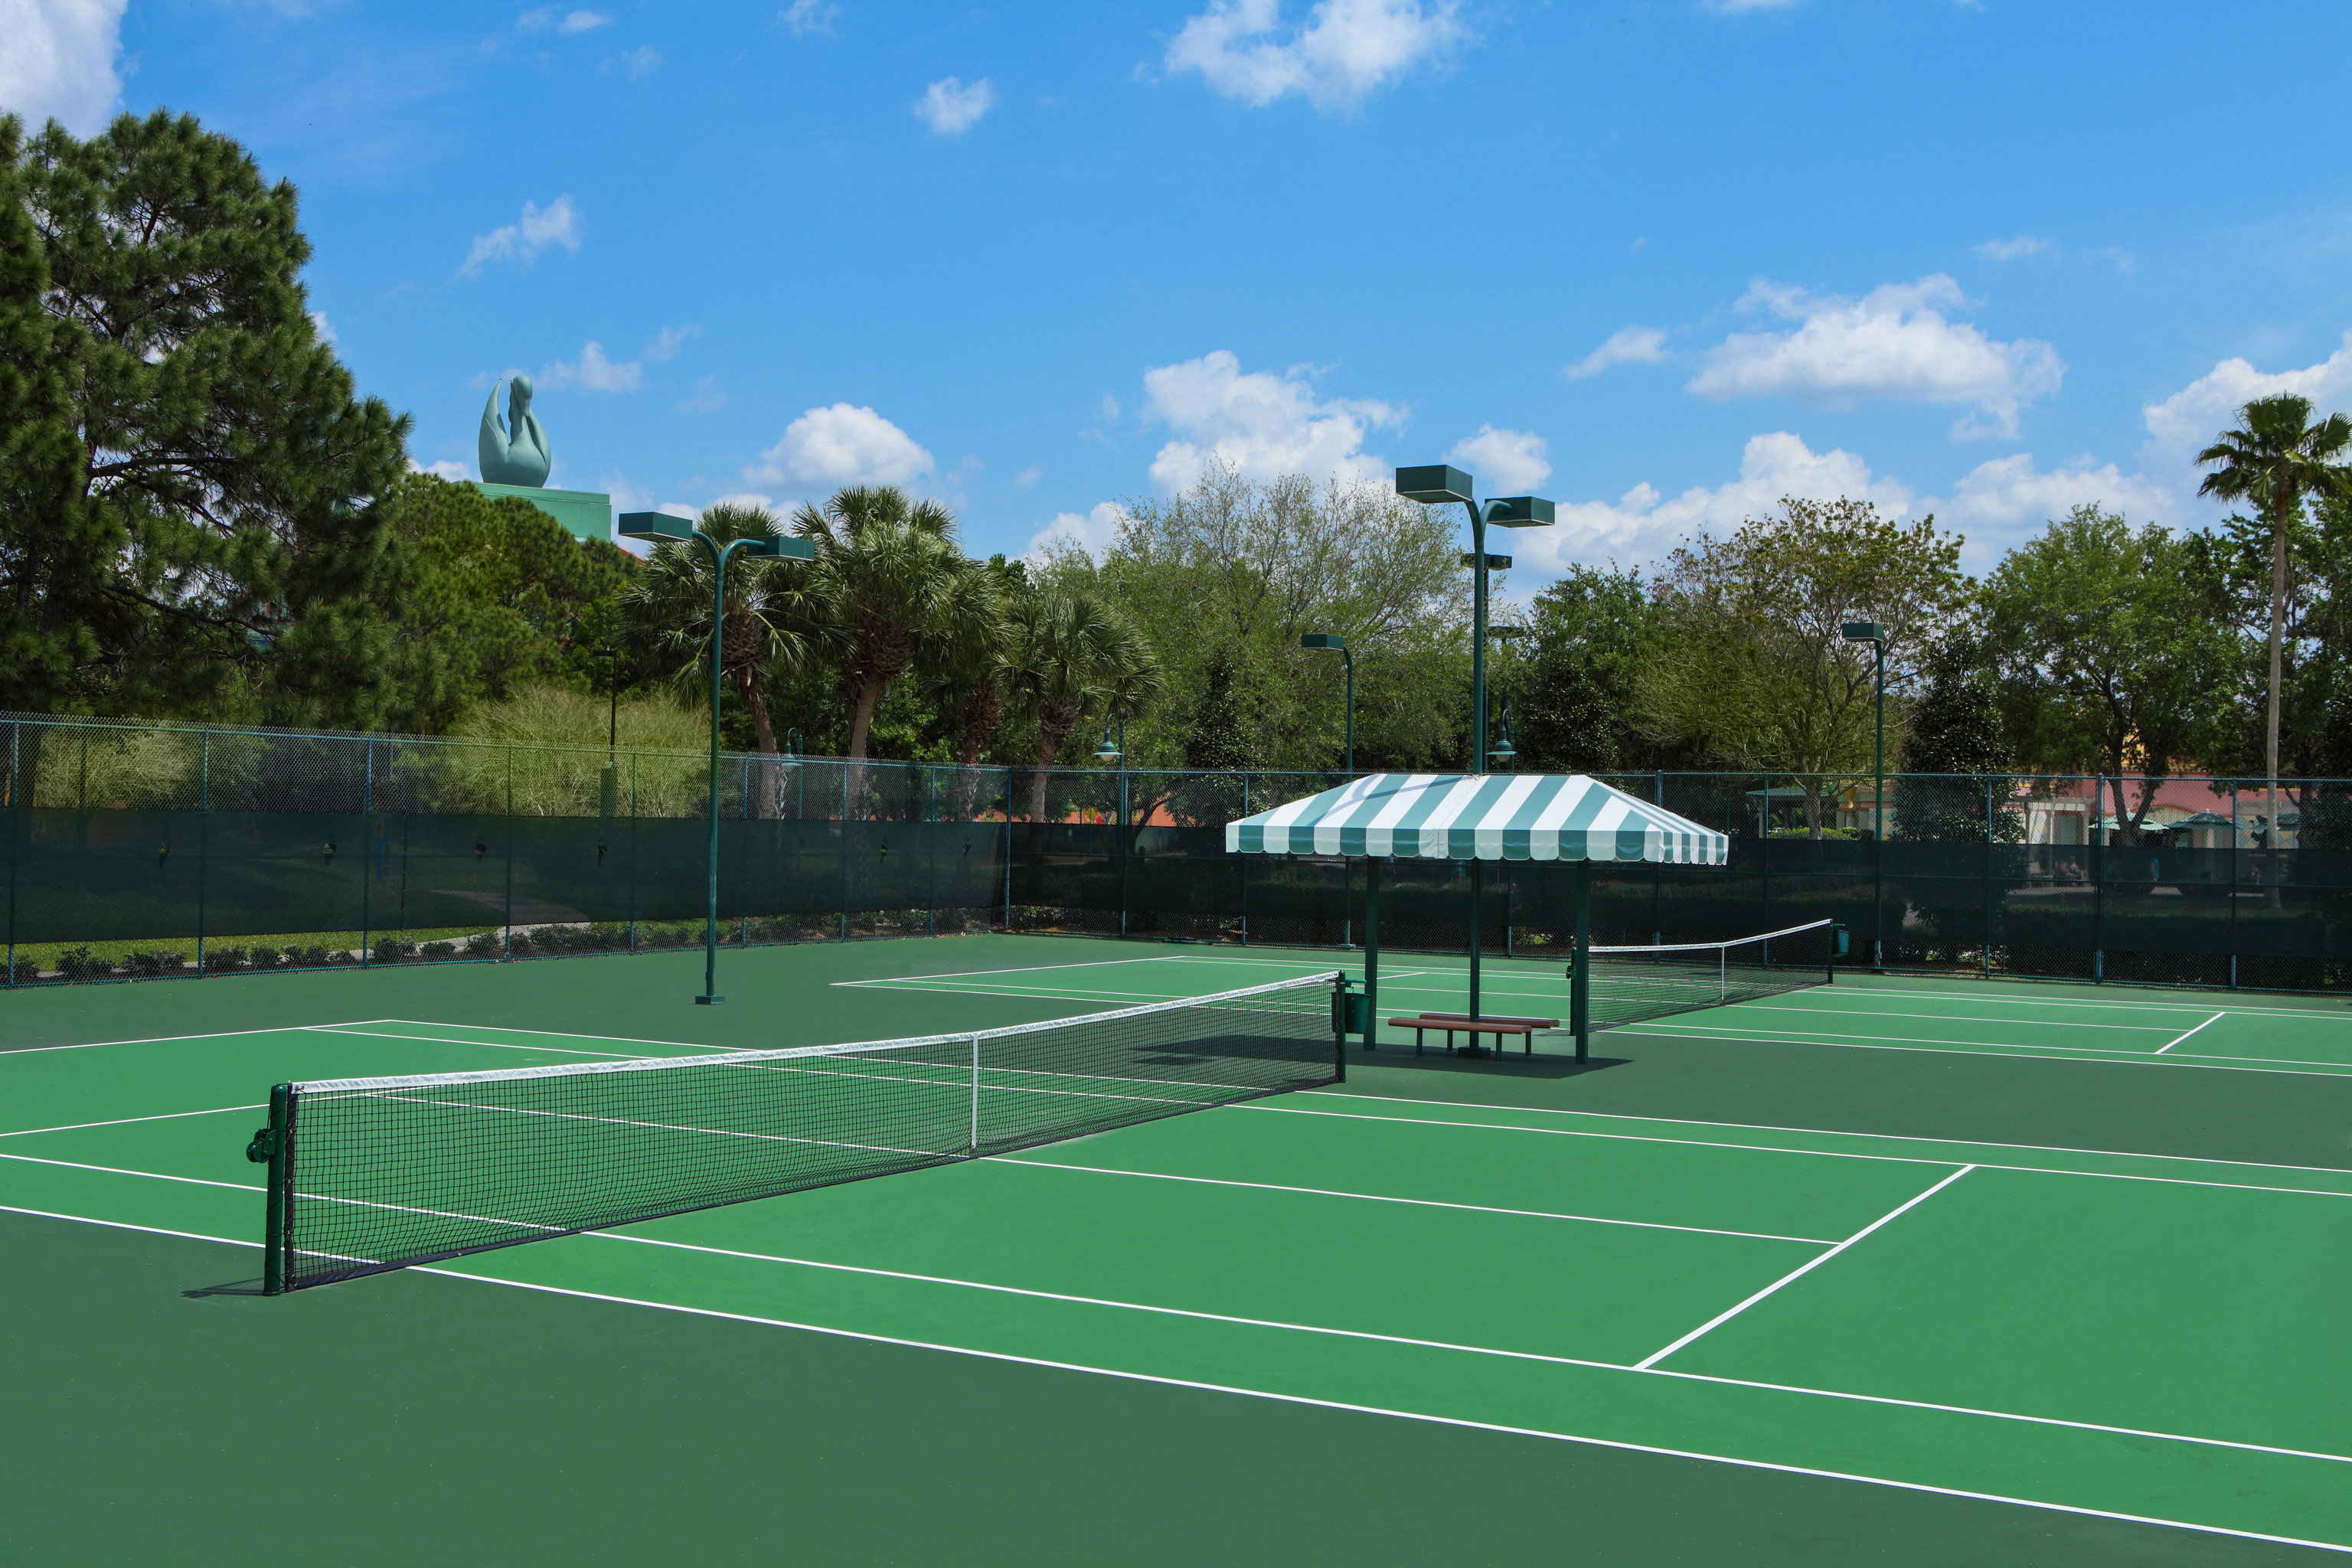 athletic game Sport tree sky structure tennis green sport venue tennis court ball game sports leisure racquet sport net baseball field soccer specific stadium day